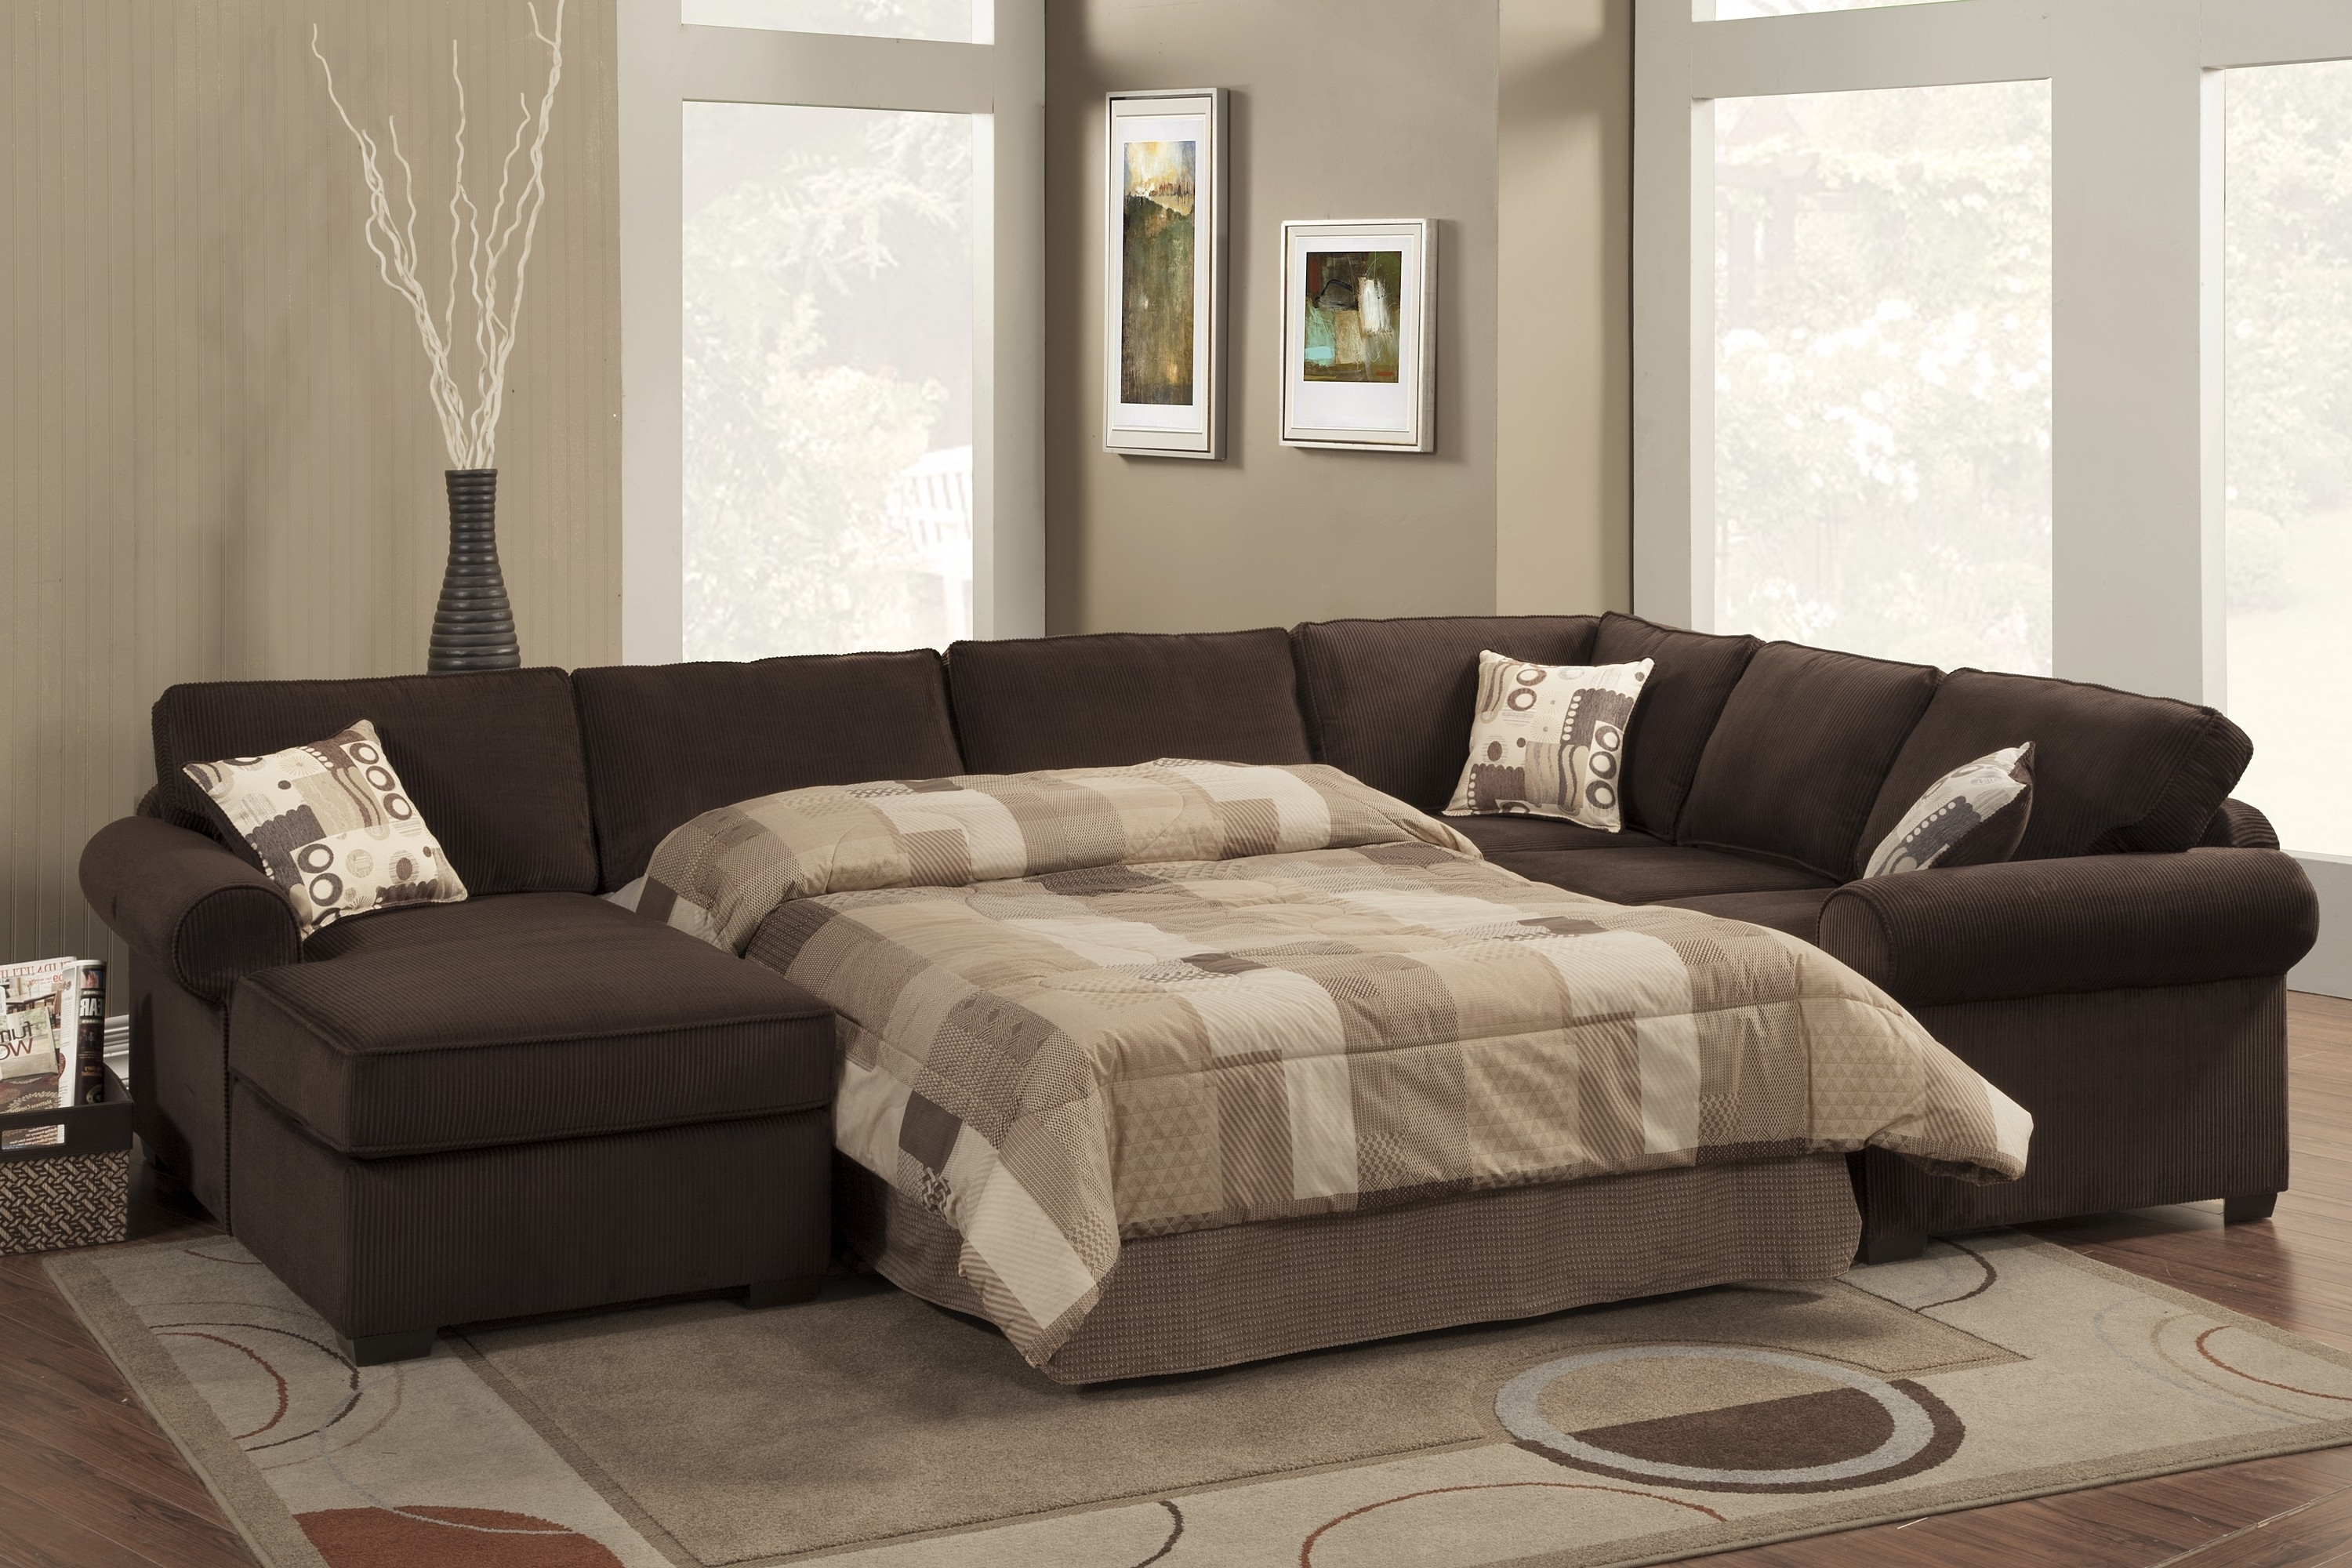 Extraordinary Sleeper Sofa Sectional Alluring Home Design Inside 2019 Sectional Sofas With Queen Size Sleeper (View 7 of 20)